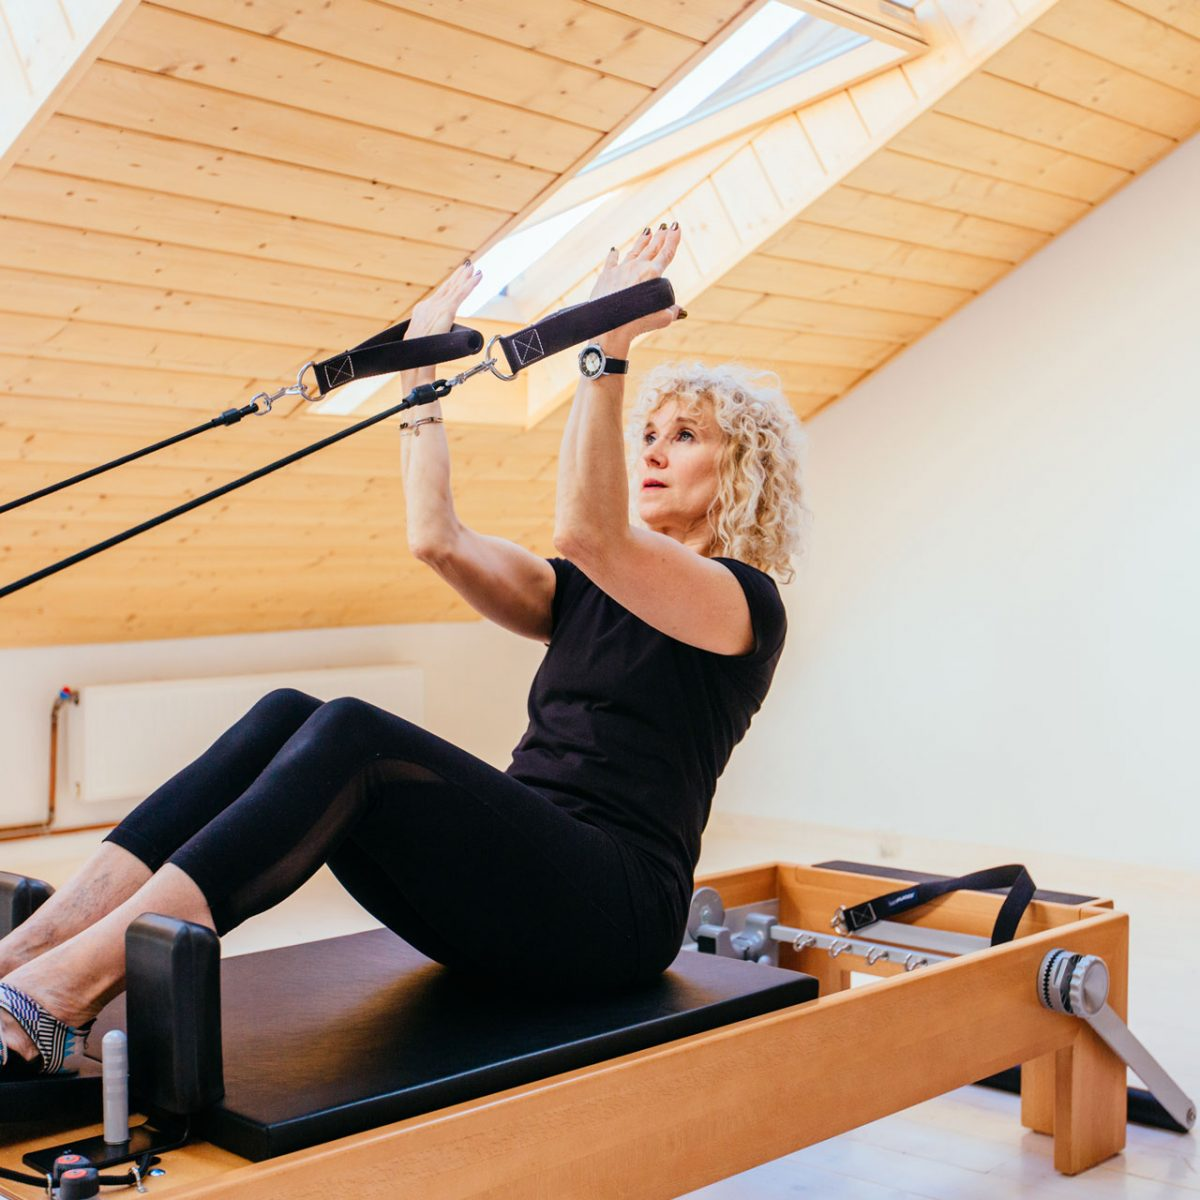 Pilates Reformer Used By Woman In New Zealand